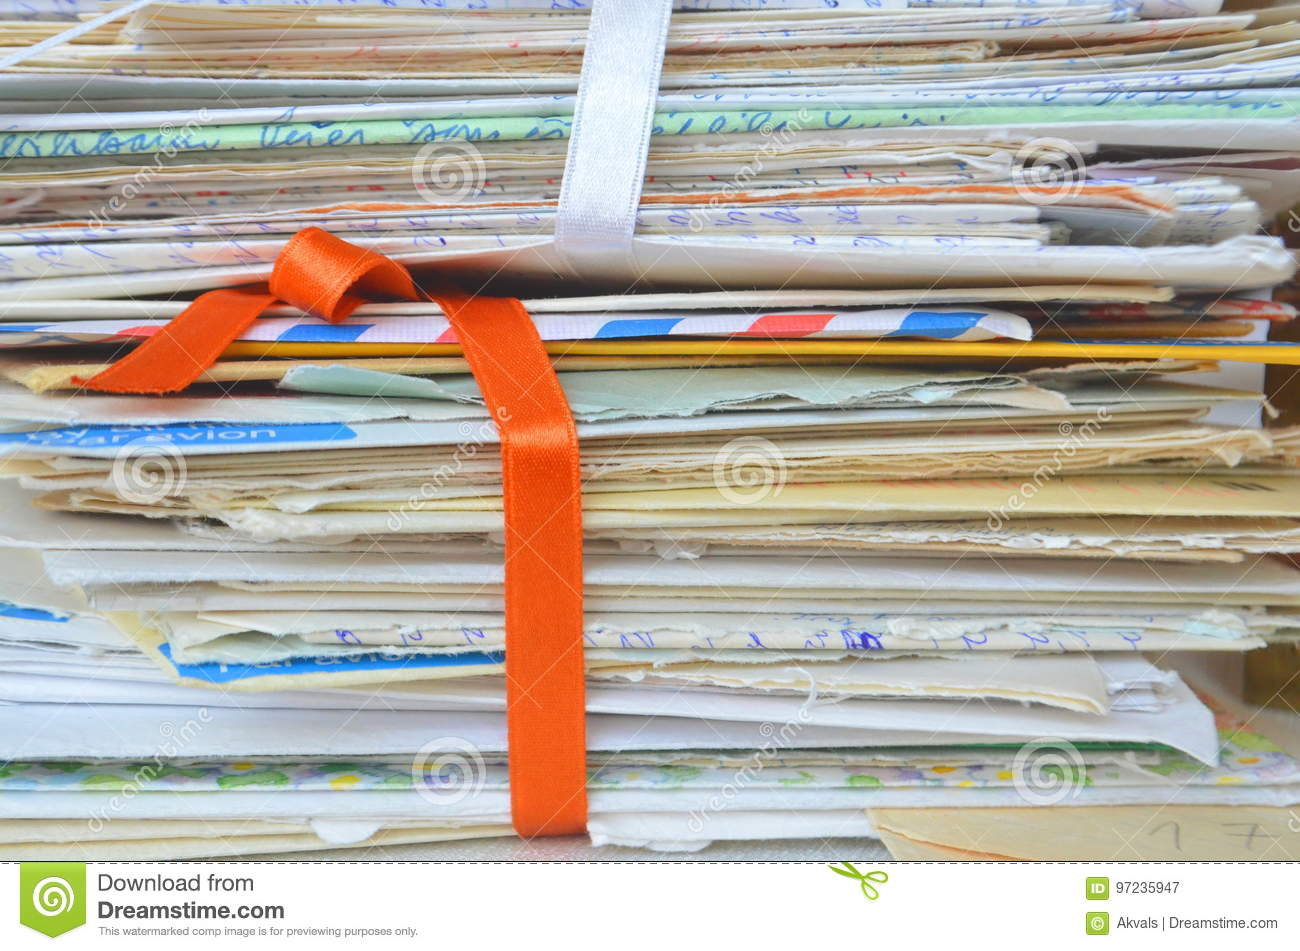 Times gone by - slow mail communication, memories, closeup of old handwritten letters for backgrounds